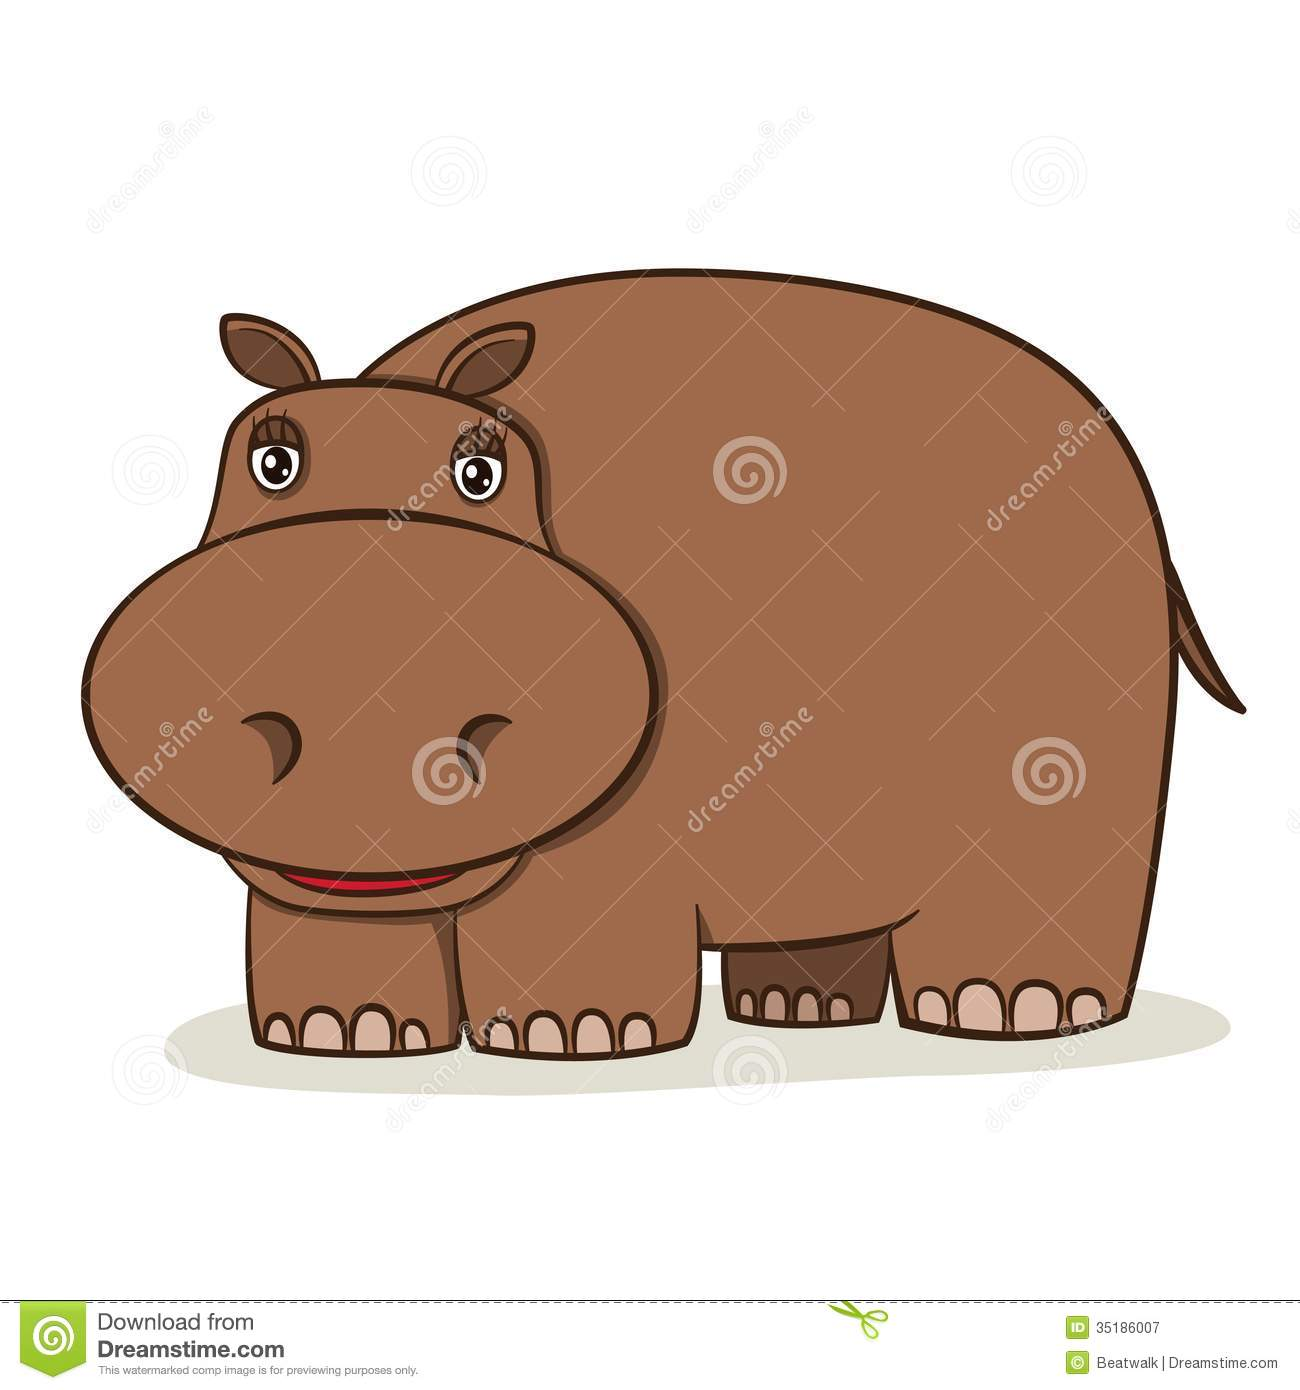 helicopter sounds free with Royalty Free Stock Photography Cartoon Hippo Cute Isolated White Background Vector Illustration Image35186007 on 100 in addition Stock Photos Plastic Toy Helicopter Image19795713 further 670 likewise 351 also Mission Patches Their Source and Meaning 001.